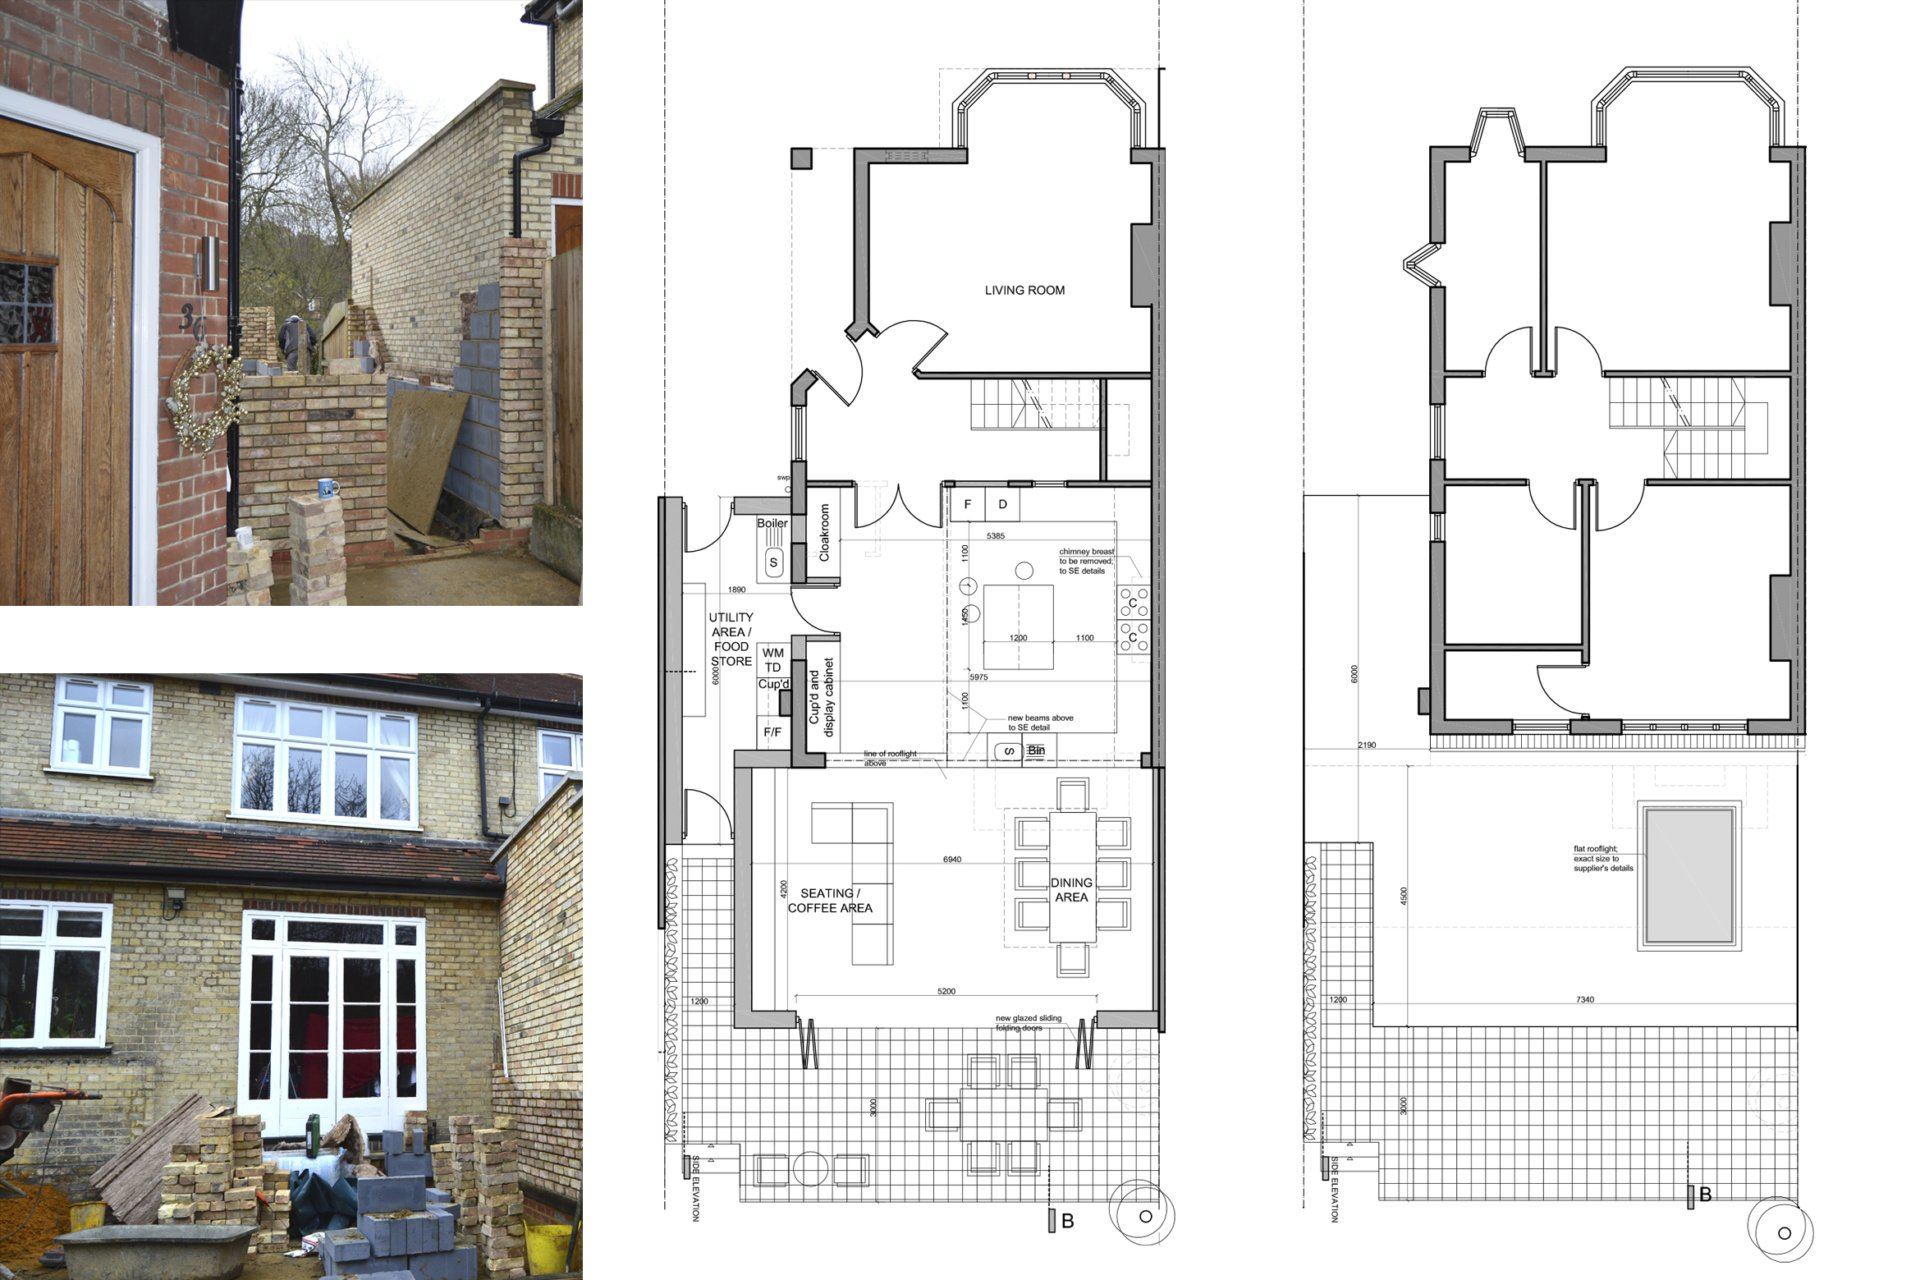 Architect designed house extension Grange Park Enfield N21 Floor Plans Grange Park, Enfield N21 | House extension and alterations